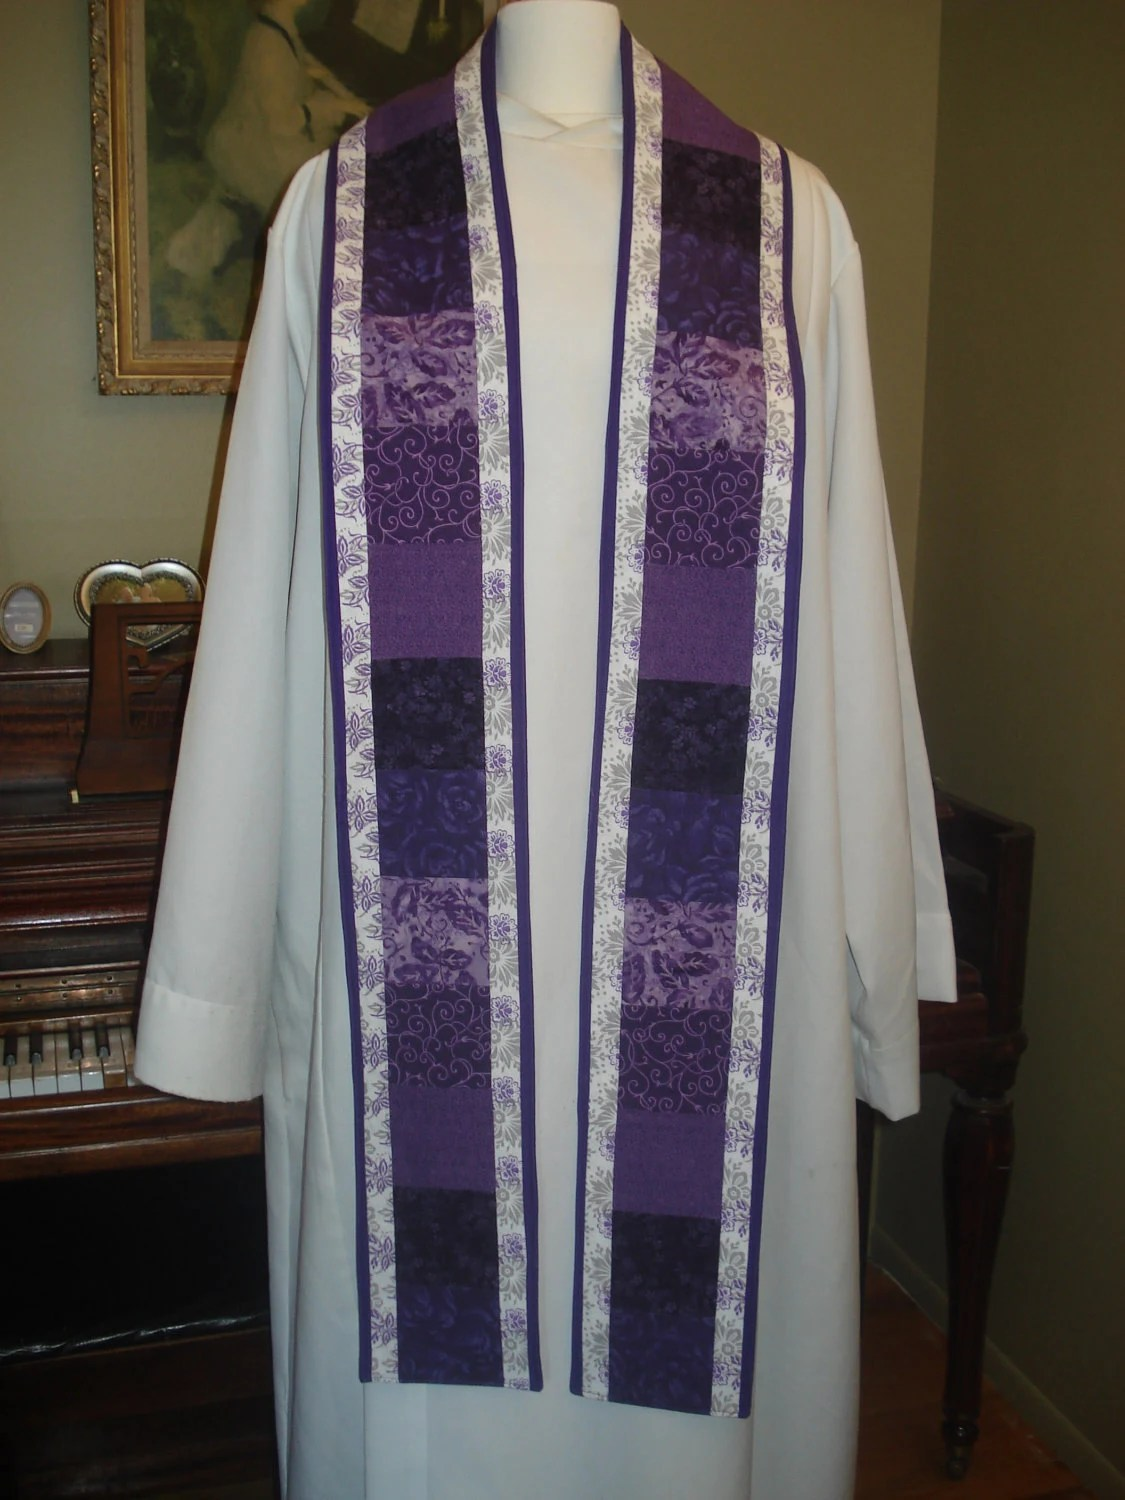 Items similar to Trimmed Squares Clergy Stole on Etsy